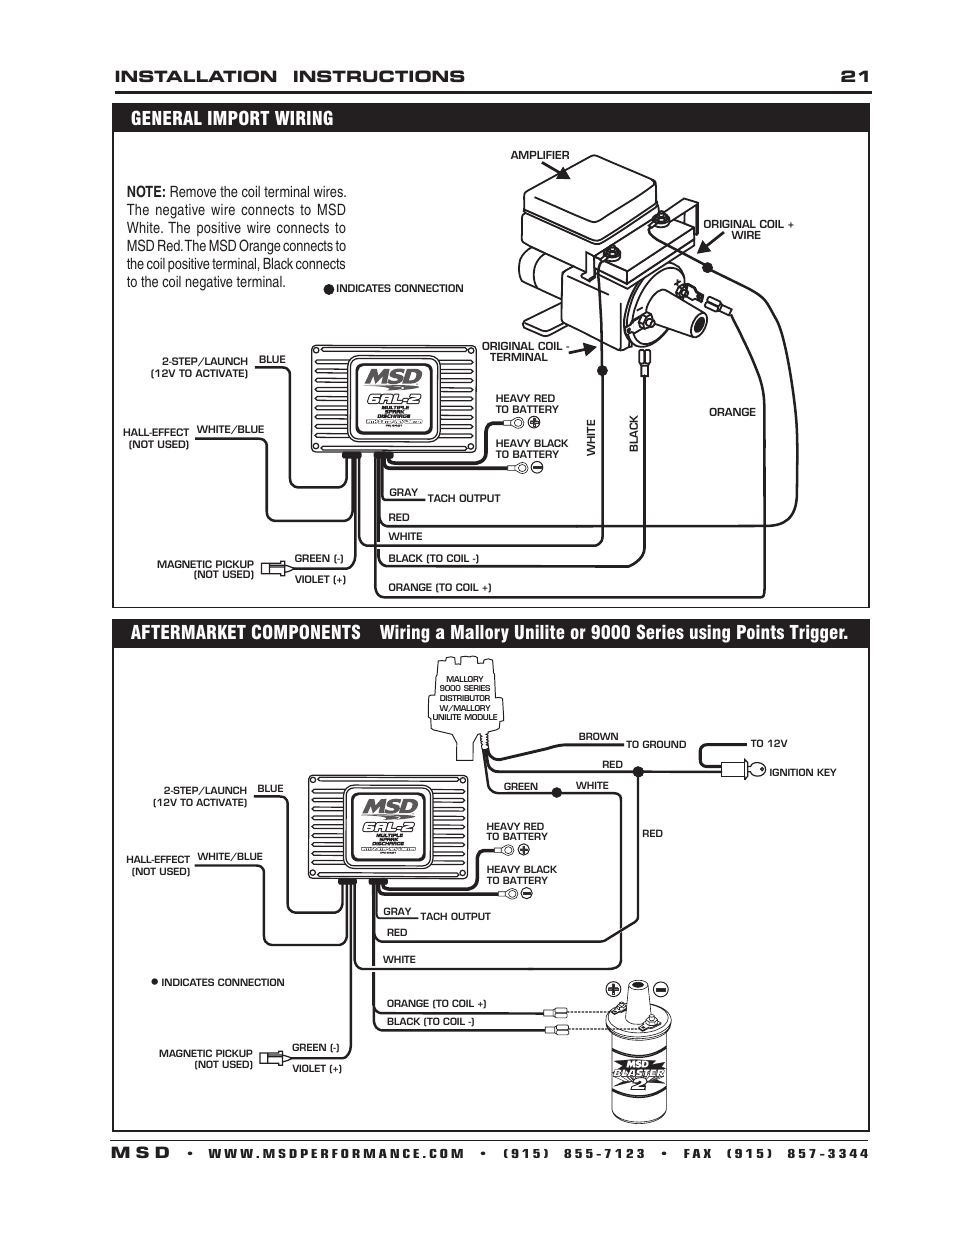 Charming Mallory 9000 Wiring-diagram Images - Best Image Wiring ...